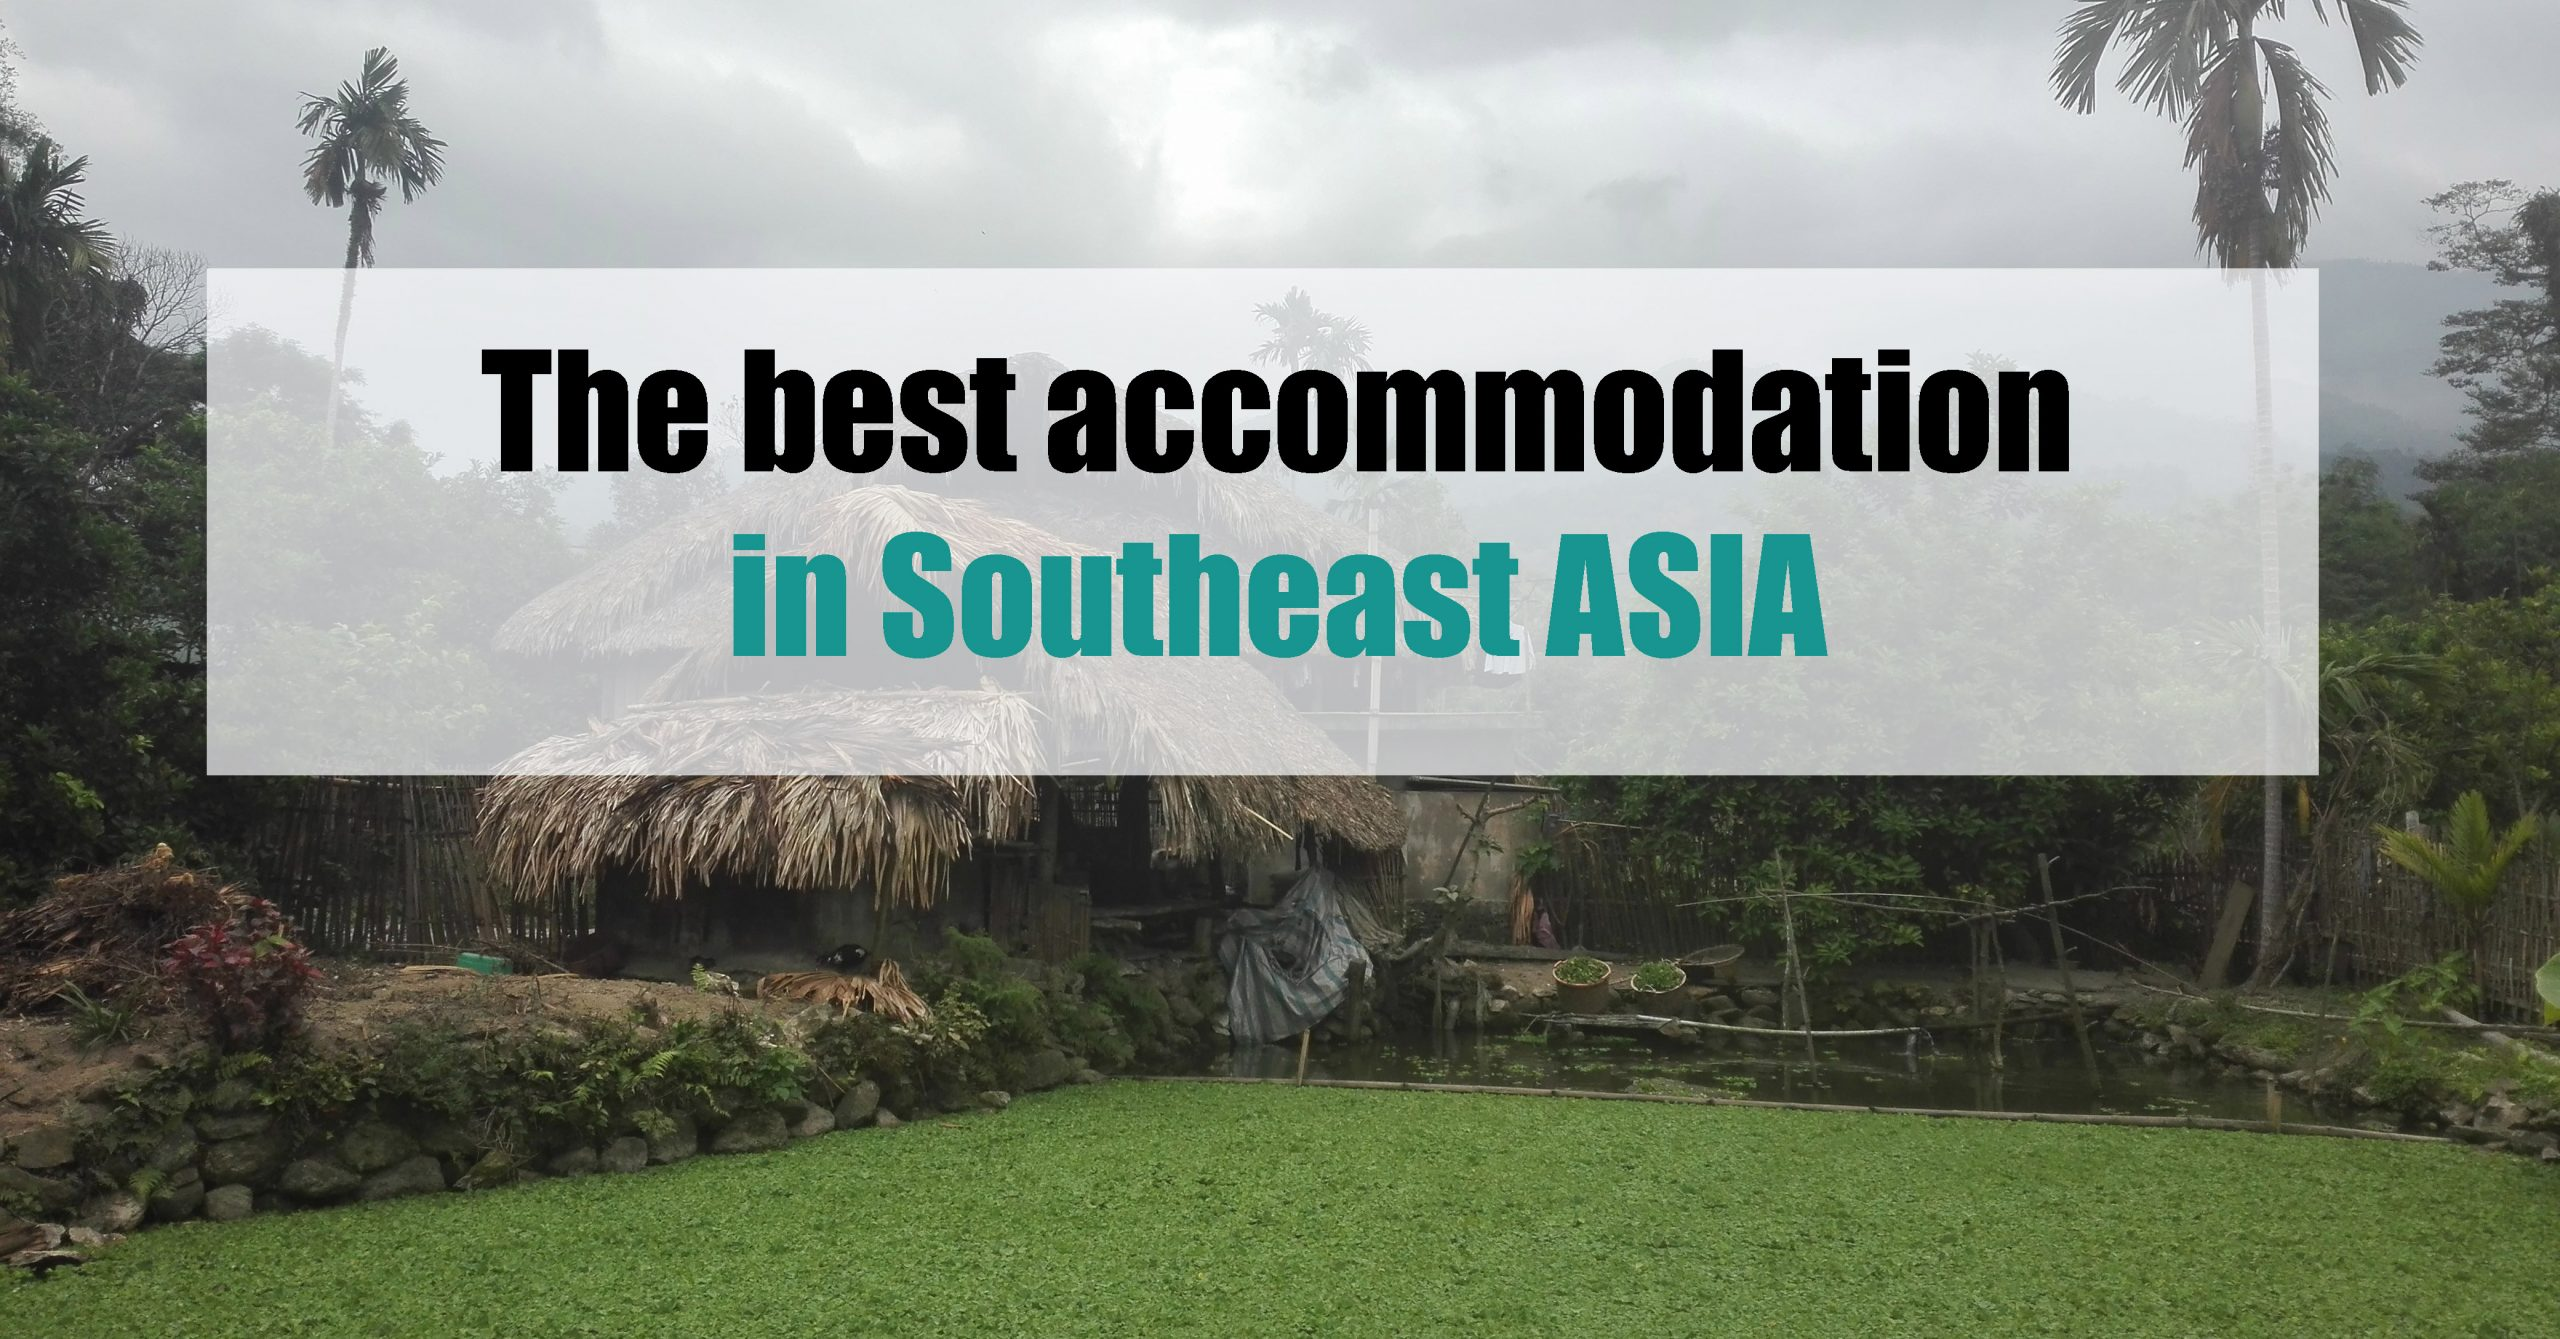 Ranking of the best accomodation in southeast Asia